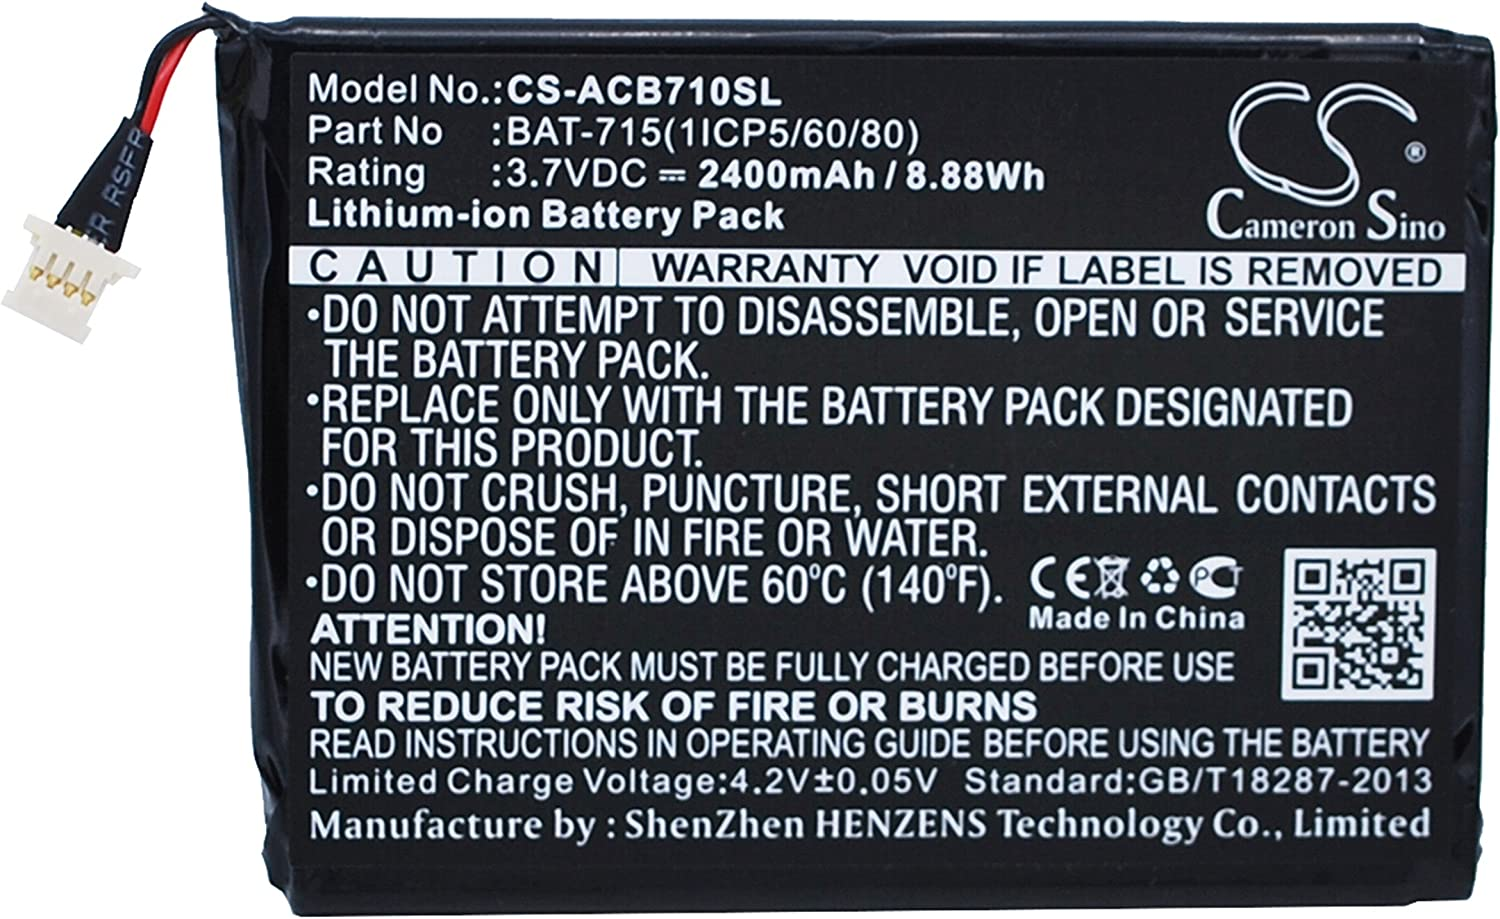 Replacement Battery Part No.BAT-715(1ICP5/60/80) for Acer Iconia B1-A71, Acer Iconia B1-A71-83174G00nk, Acer Iconia Tab B1, Li-ion Tablet Battery